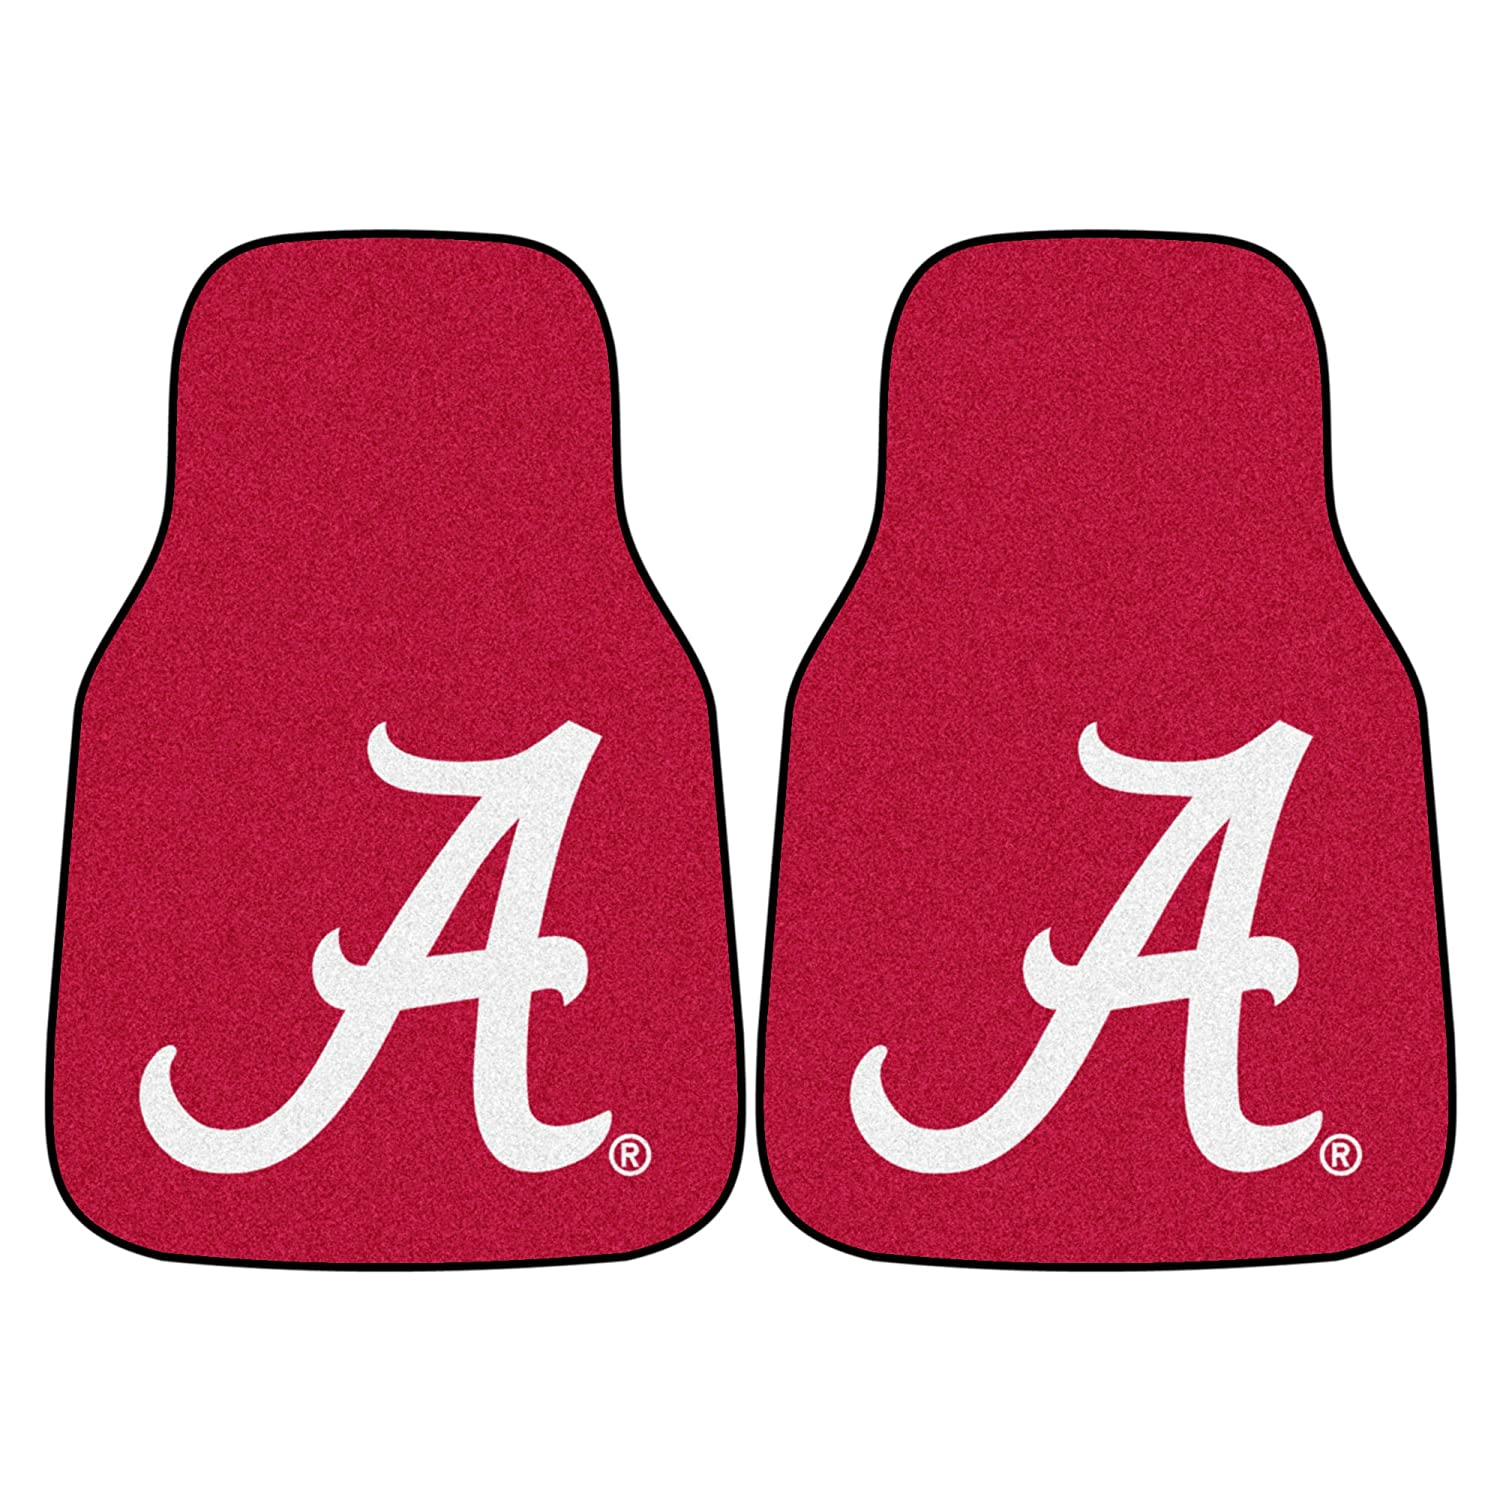 Fanmats Alabama Crimson Tide Carpeted Car Mats